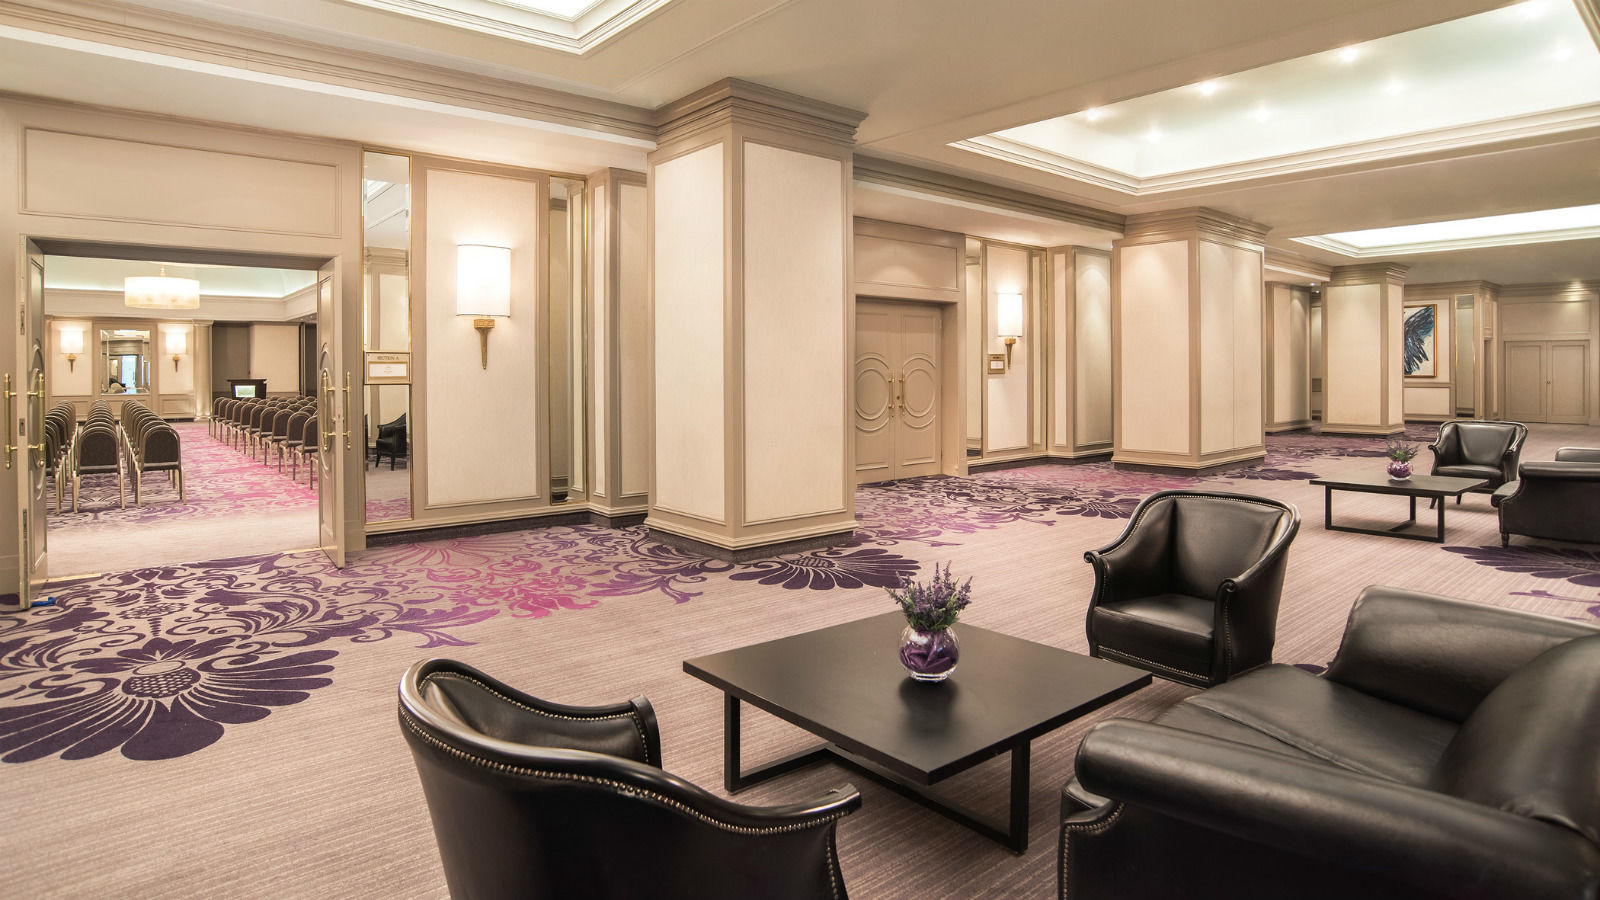 The Foyer by the Grand Ballroom